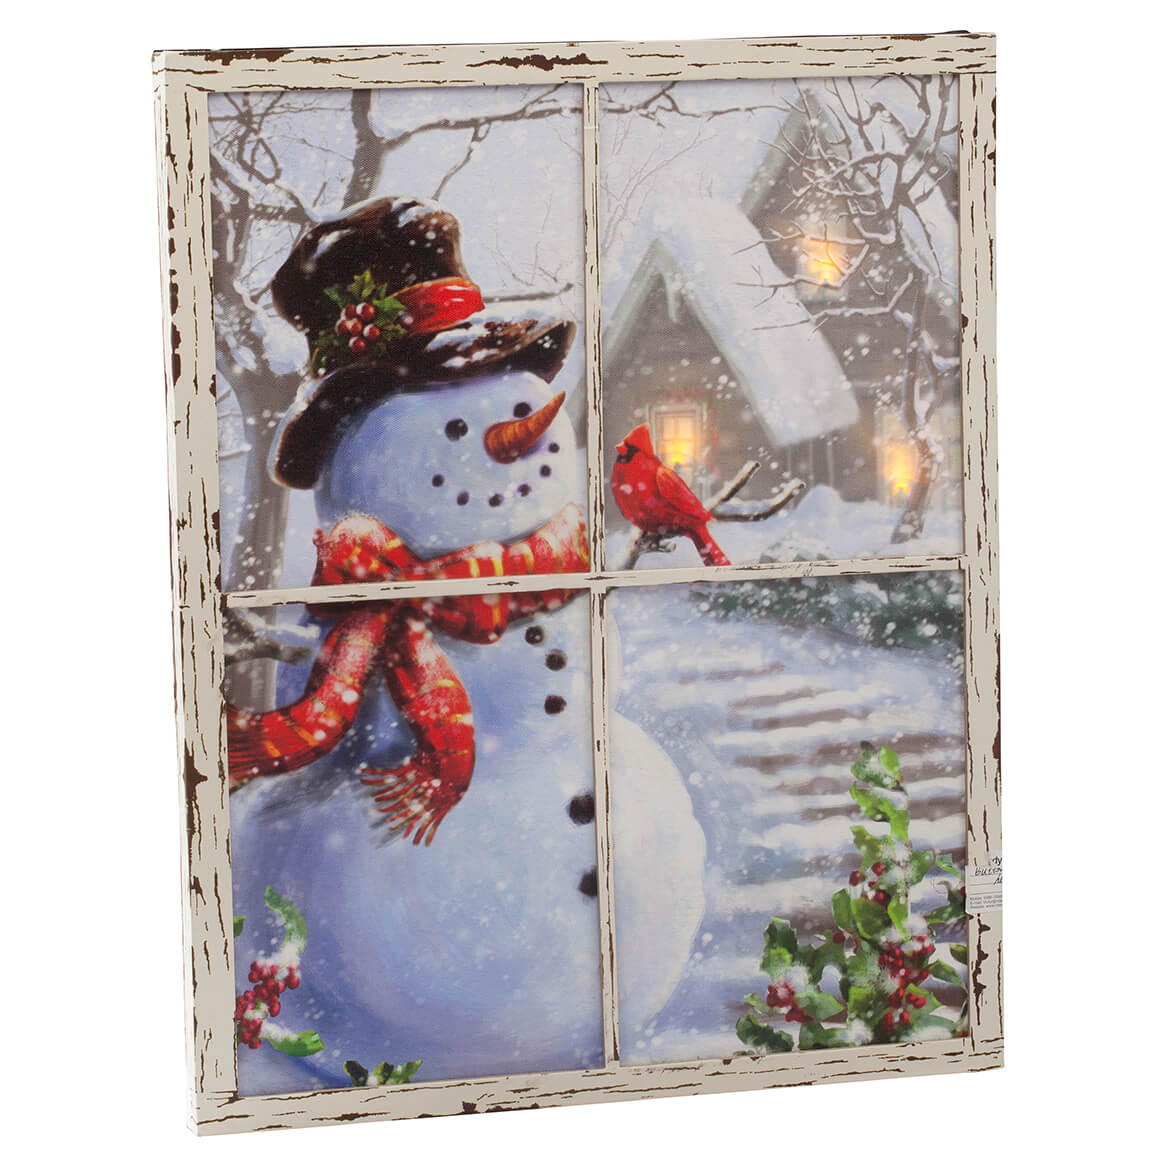 Lighted Snowman Window Canvas by Holiday Peak™-363474